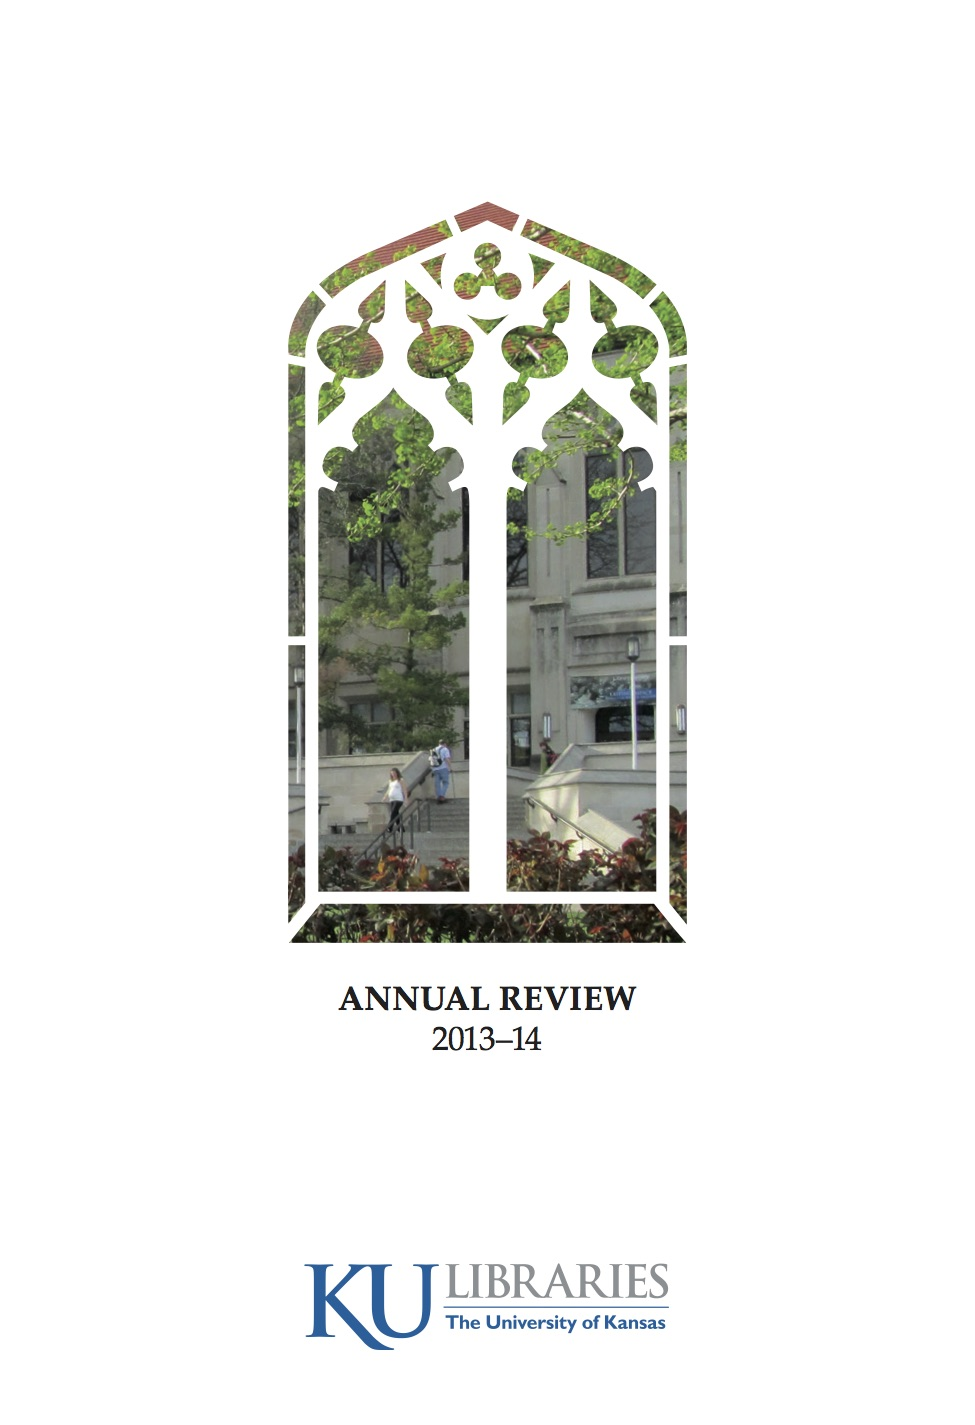 Annual Review 2013-2014